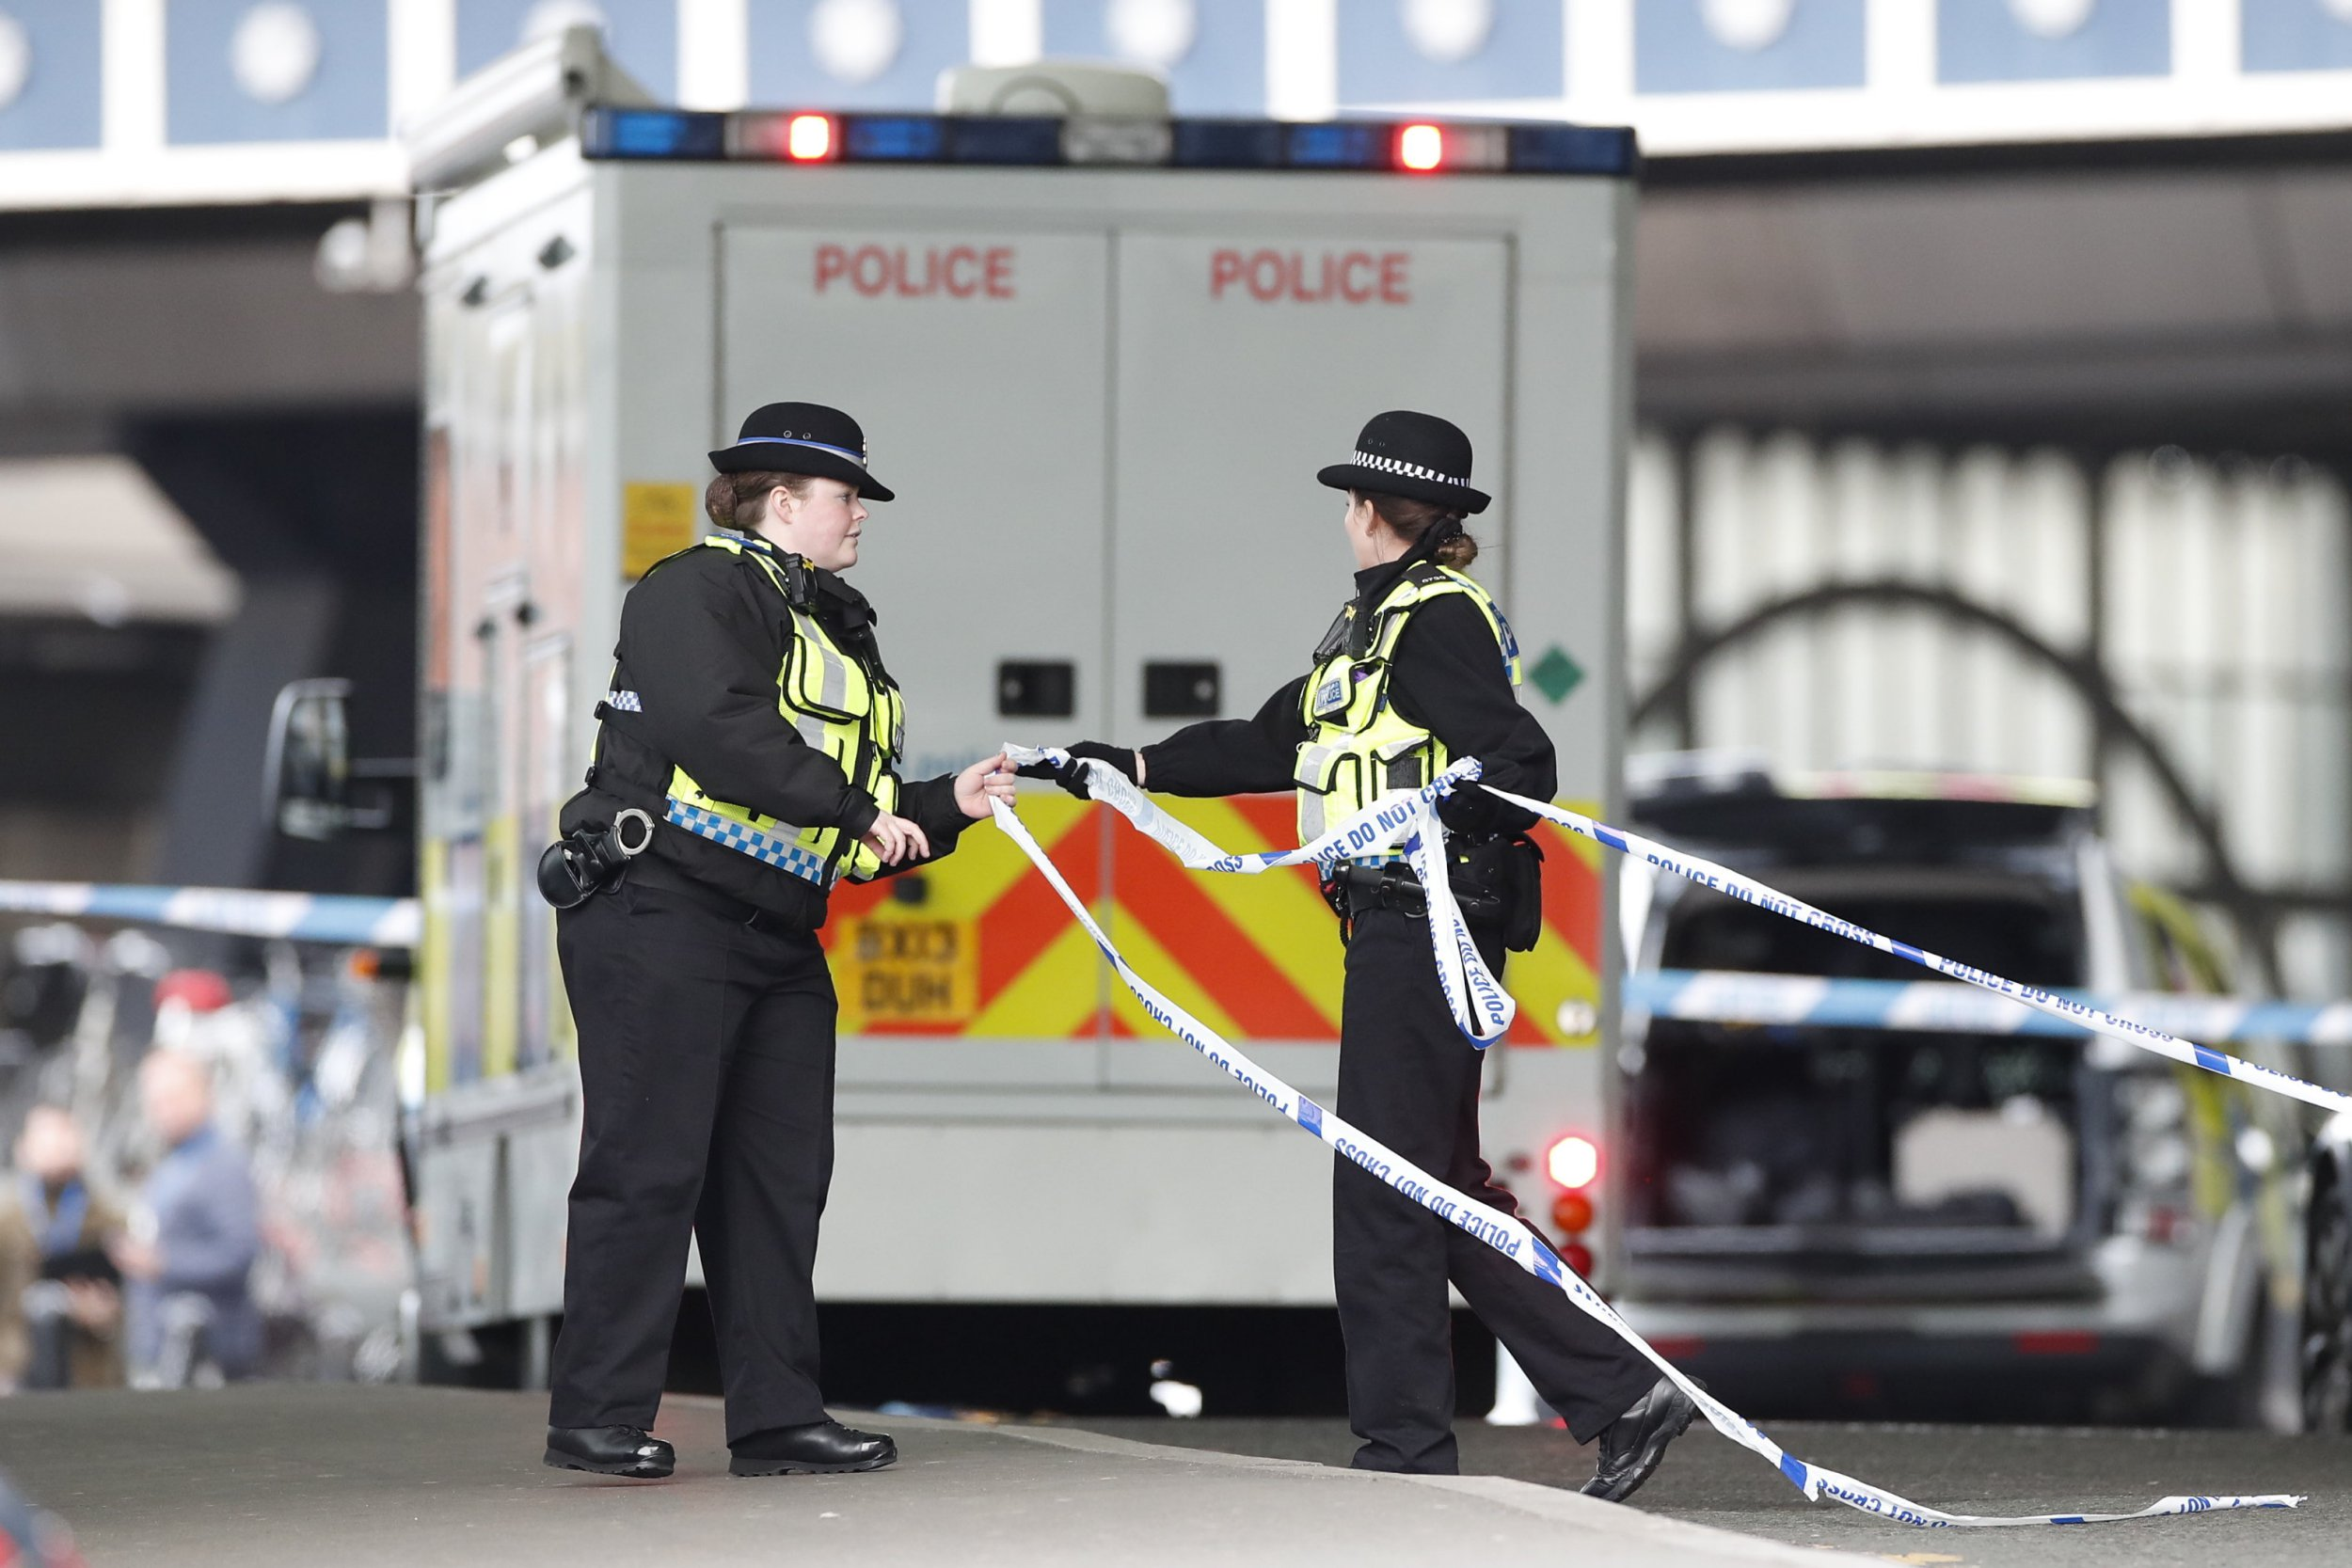 ?? Licensed to London News Pictures. 05/03/2019. London, UK. The scene at Waterloo Station as police deal with a suspicious package. Earlier reports said the station has been evacuated, but police state that trains are running as normal. Similar incidents have been reported at Heathrow and London City airport. Photo credit: Peter Macdiarmid/LNP